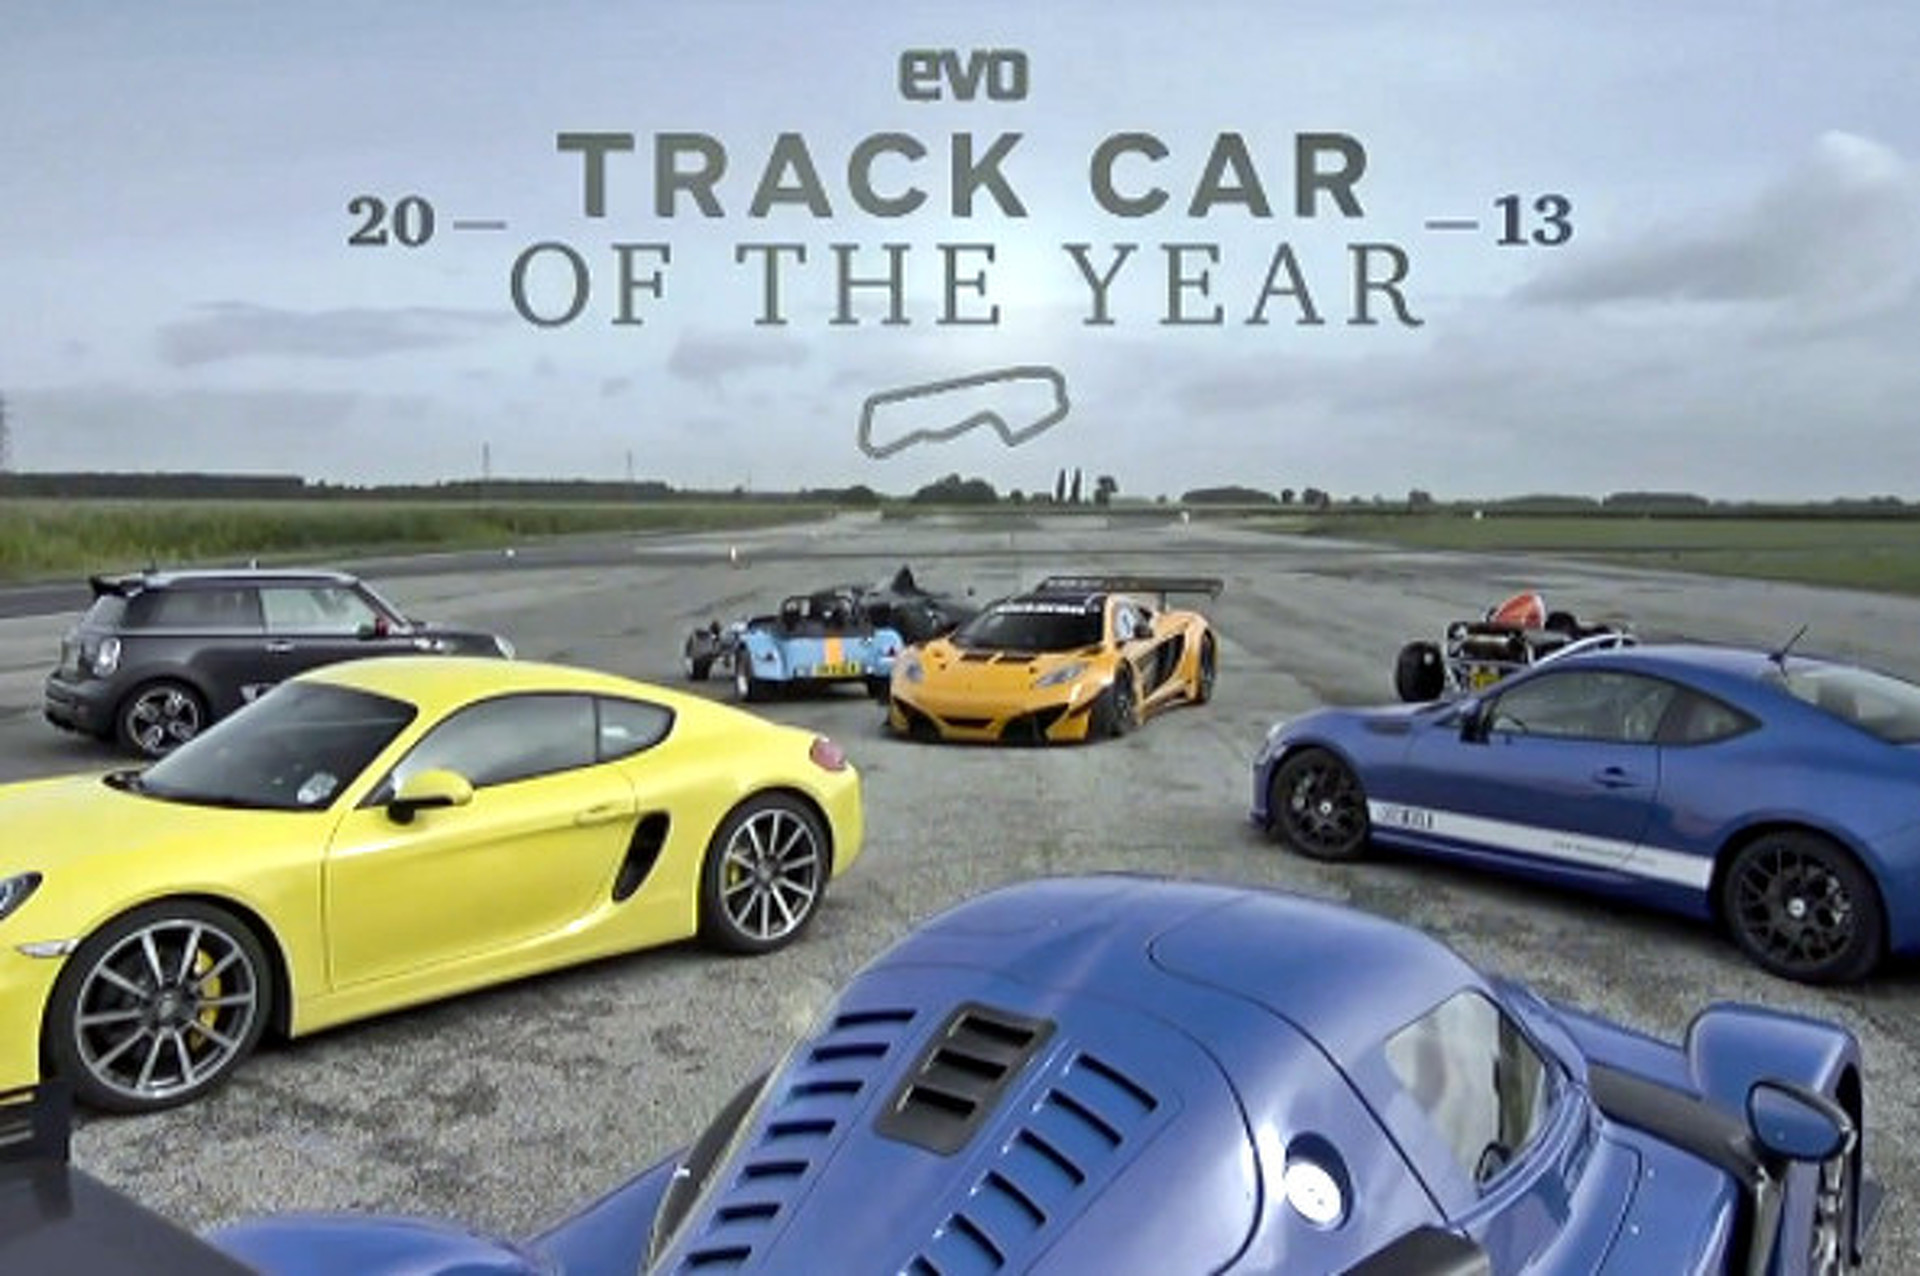 EVO Magazine Names 2013 Track Car of the Year [video]